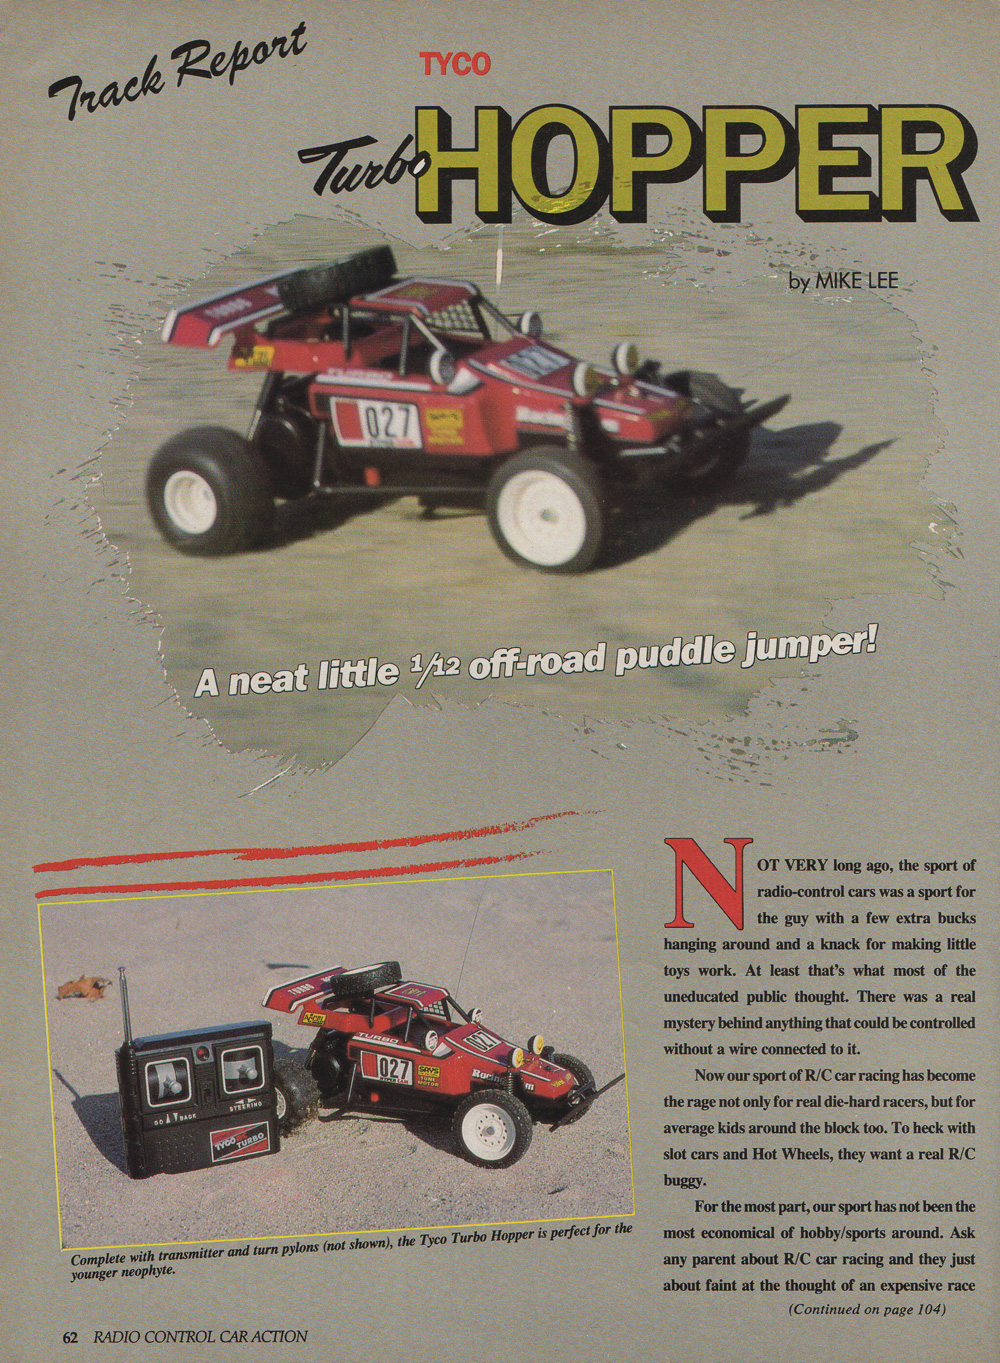 Rc Car Action >> Tyco Taiyo Turbo Hopper In R C Car Action 1986 R C Toy Memories